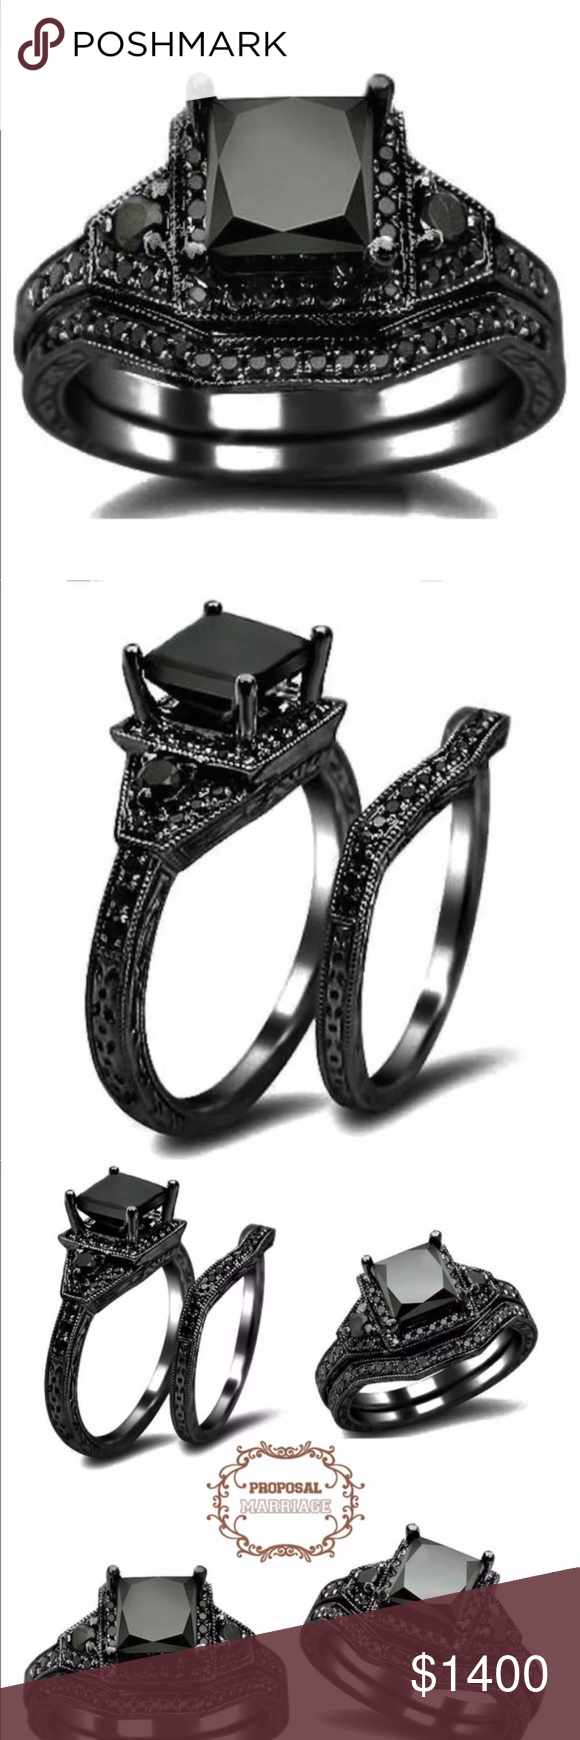 Black Gold Black Diamond Princess Engagement Set 7 NWT